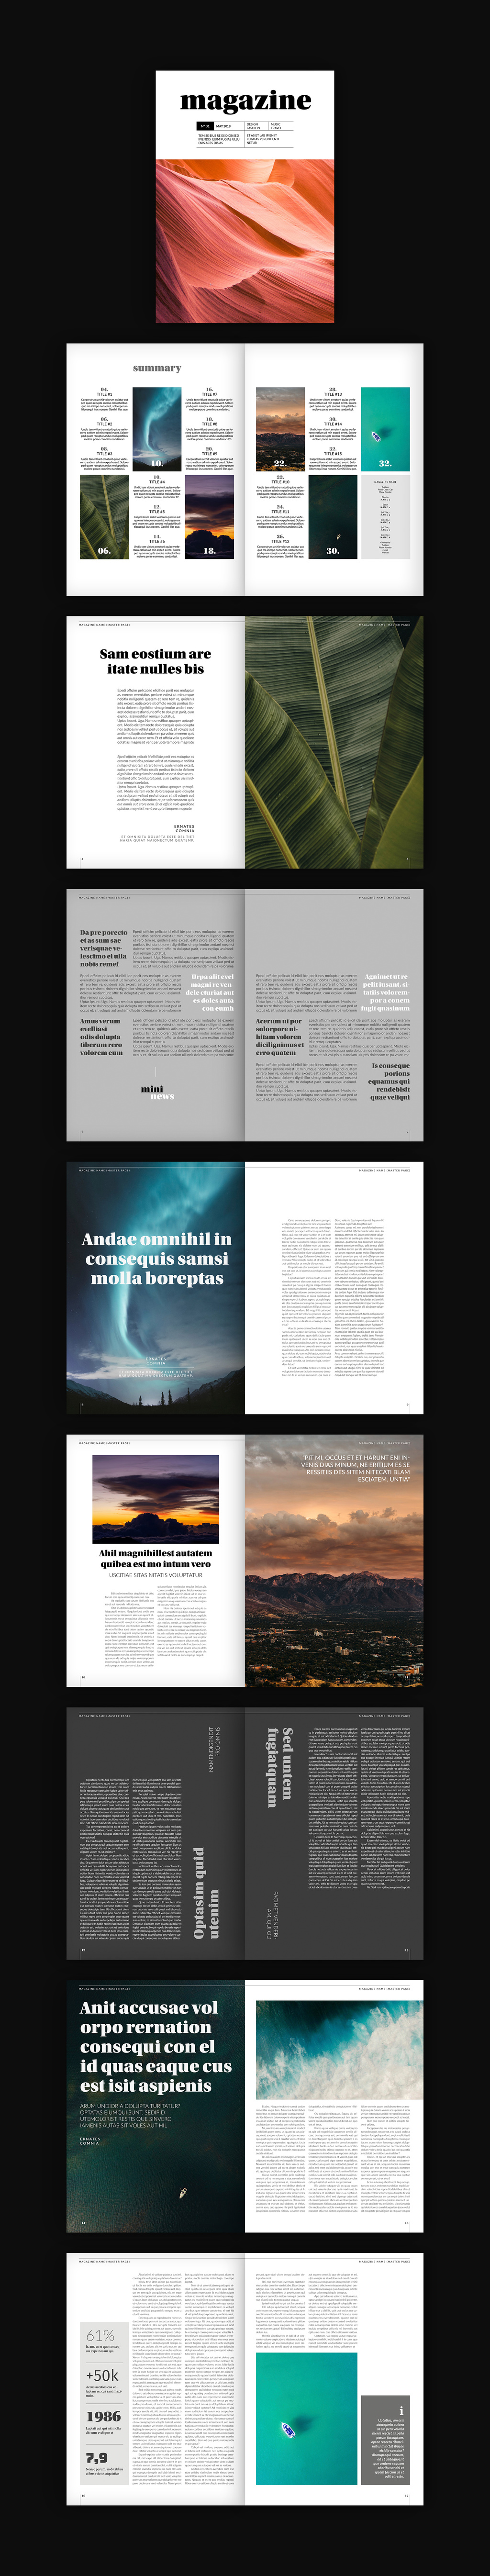 Adobe InDesign magazine template by Tom Sarraipo.